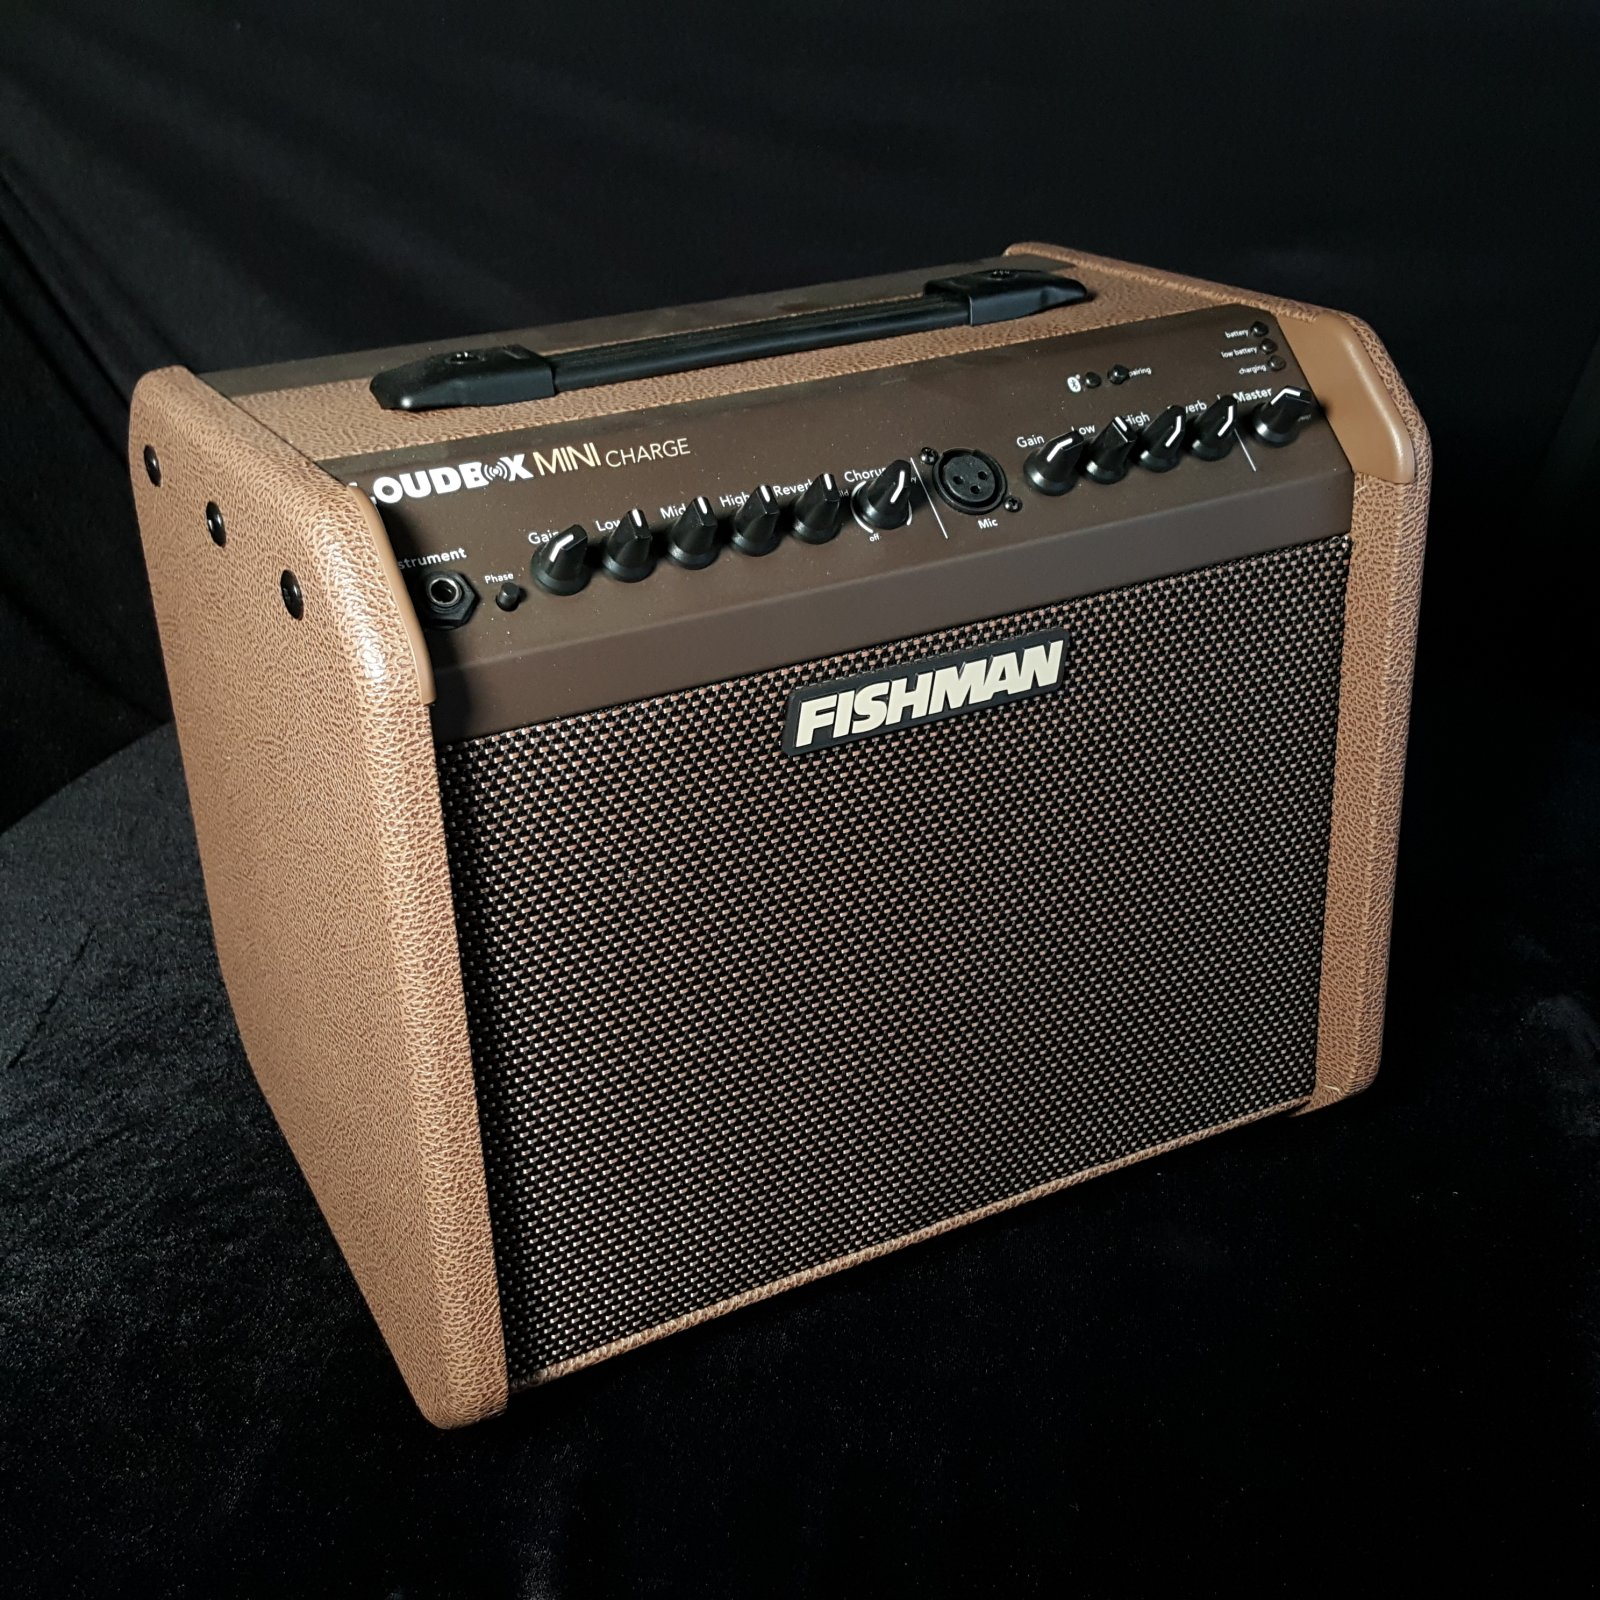 Fishman Loudbox Mini Charge Rechargeable Acoustic Amp